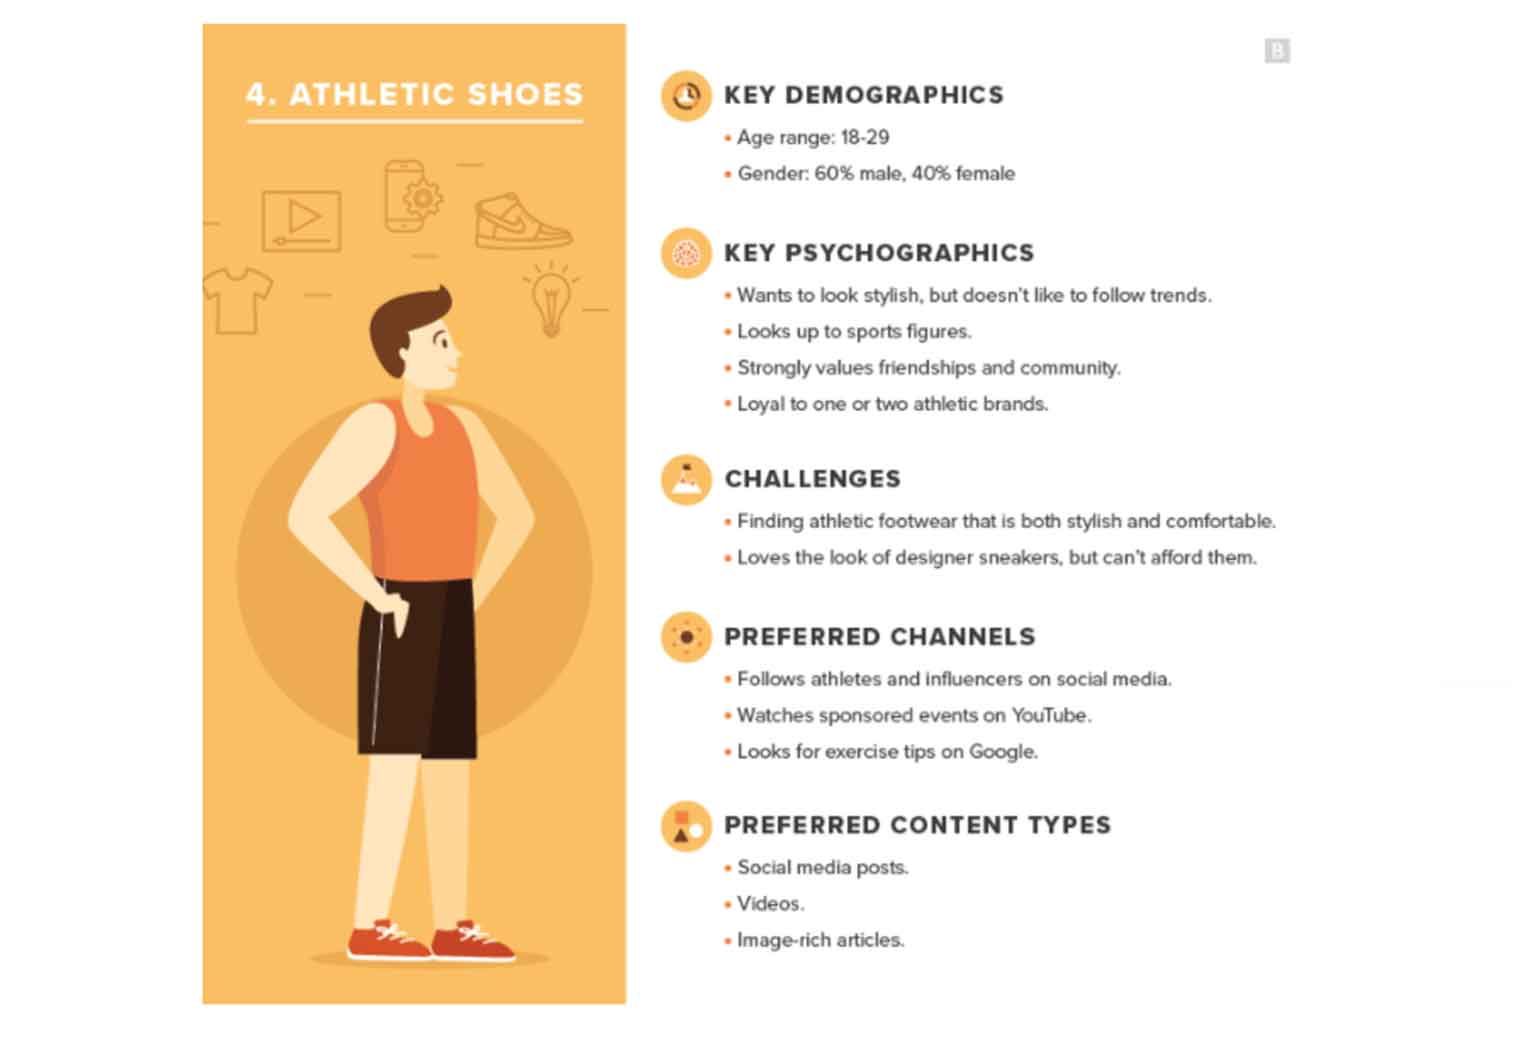 Here's a business-to-consumer customer profile analysis from content marketing agency Brafton.